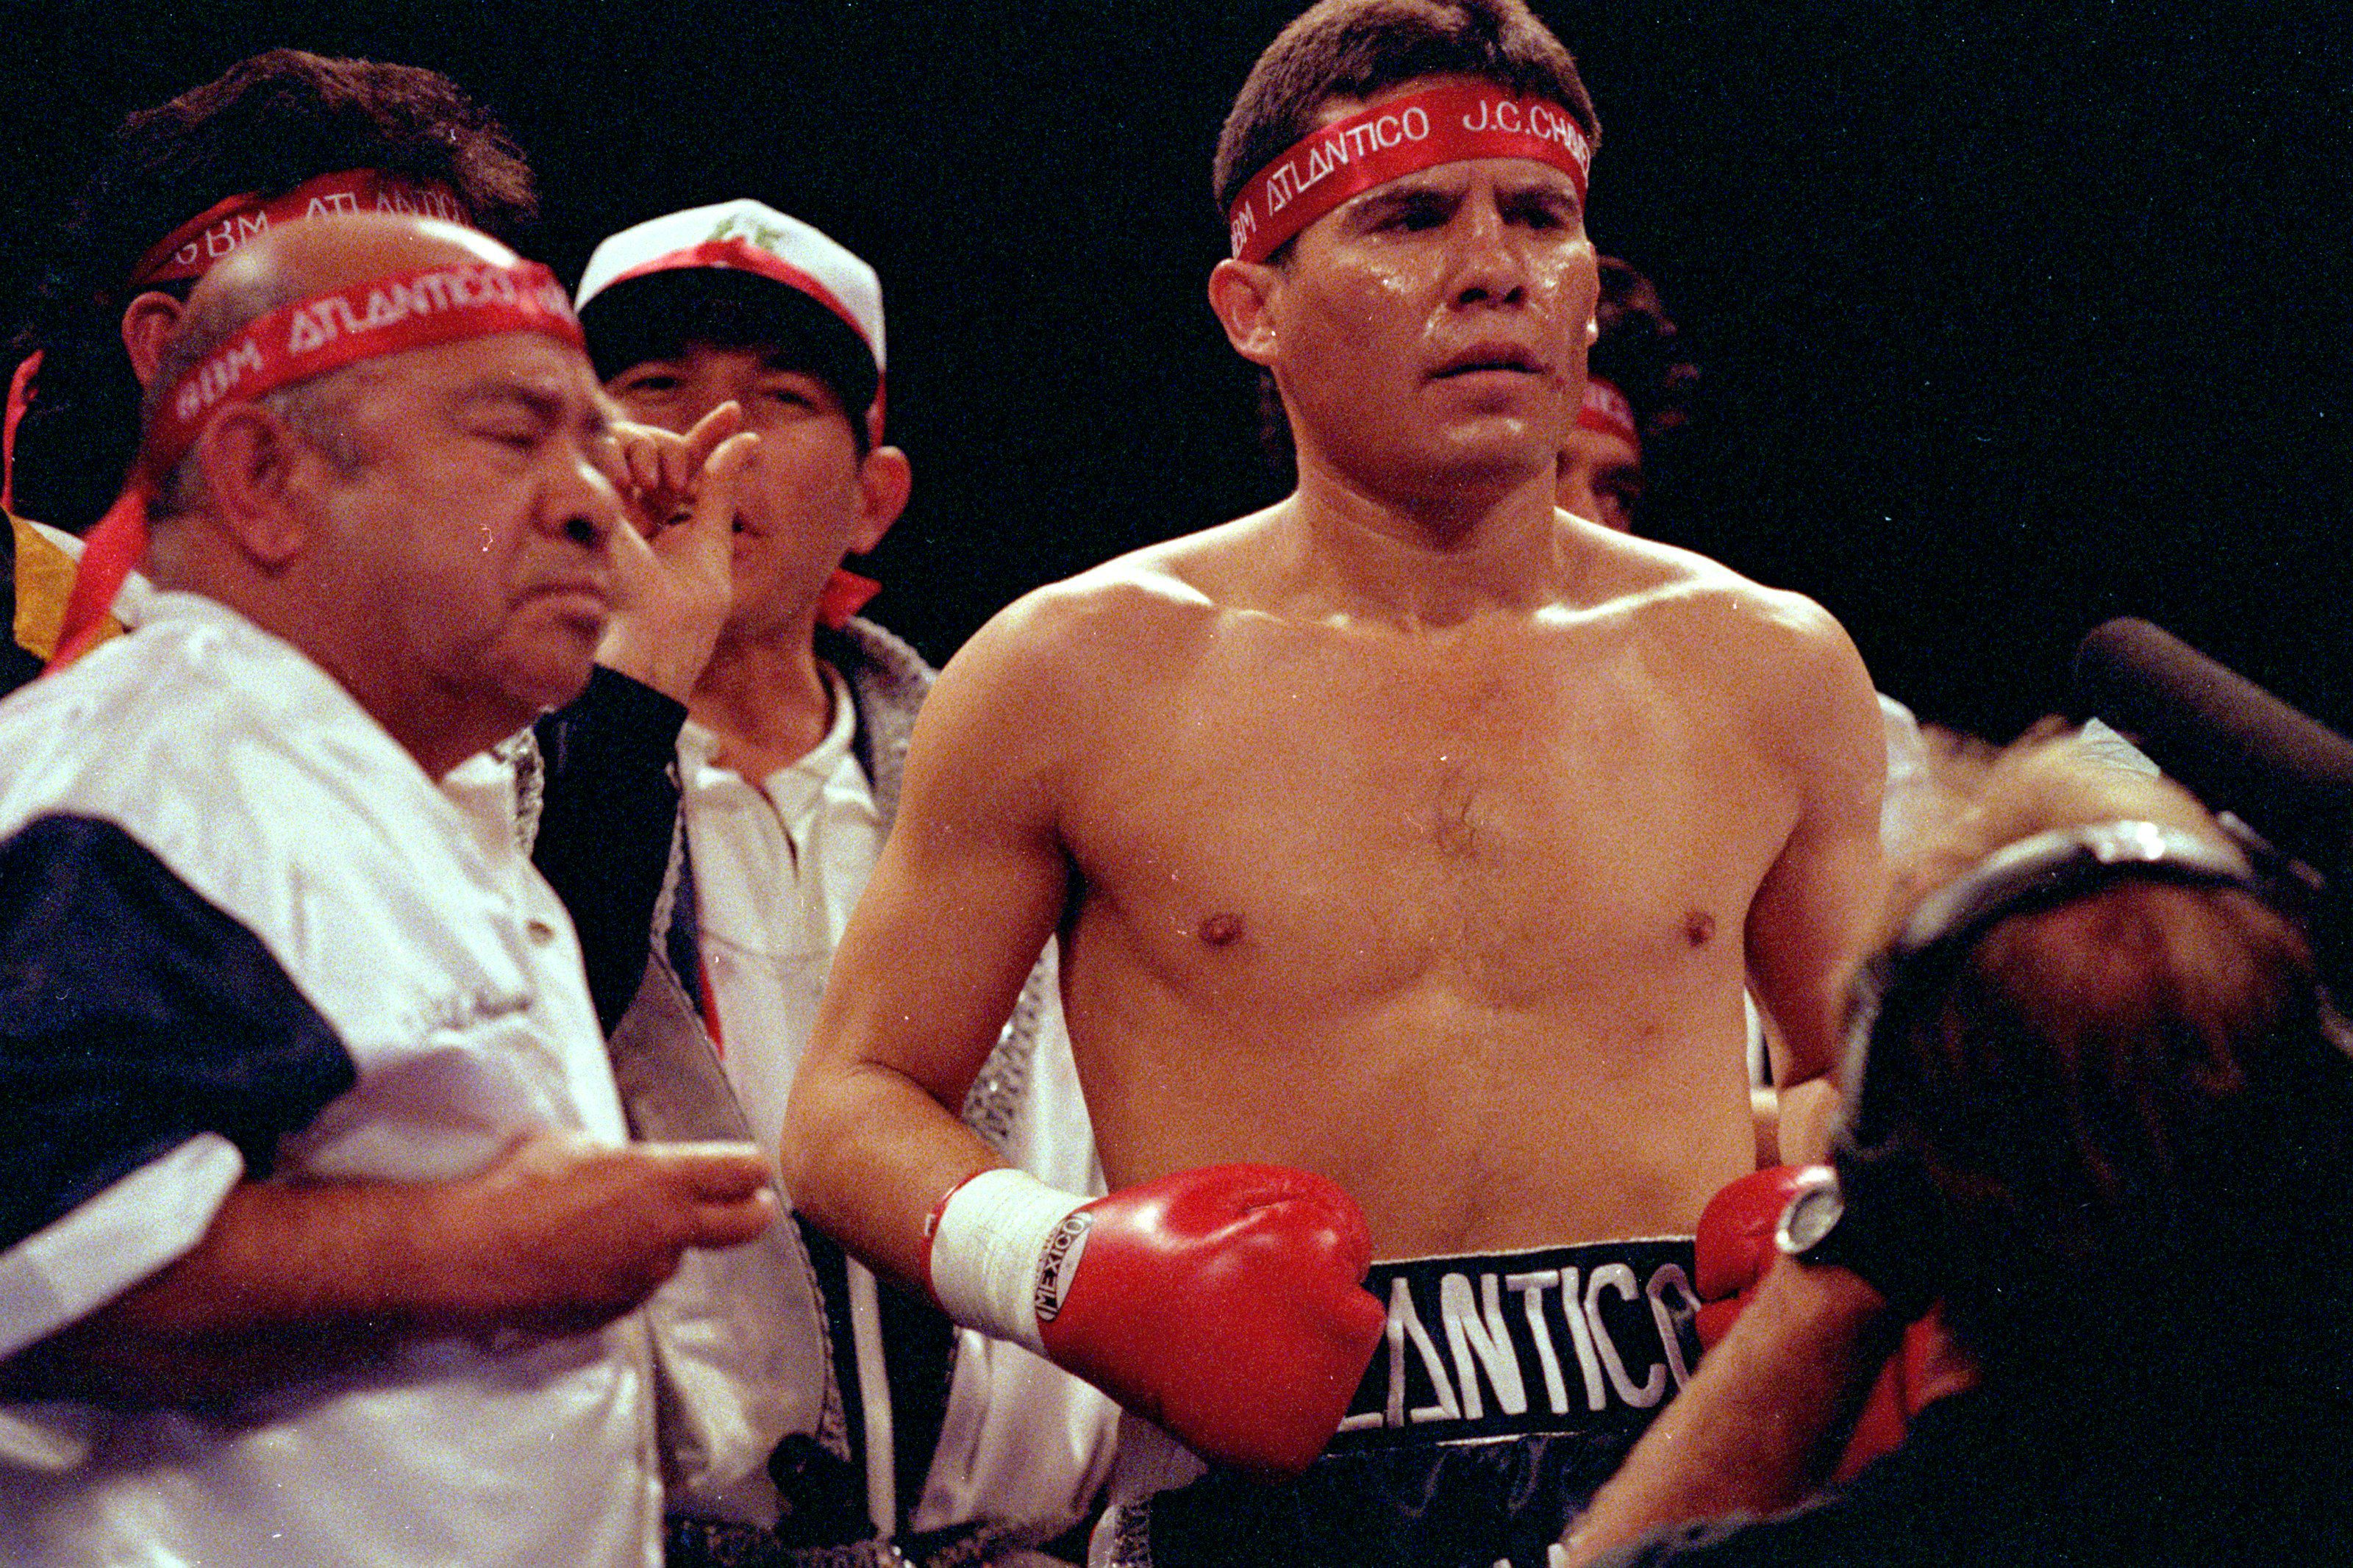 Julio Caeser Chavez dances in the ring before the fight against Greg Haugen